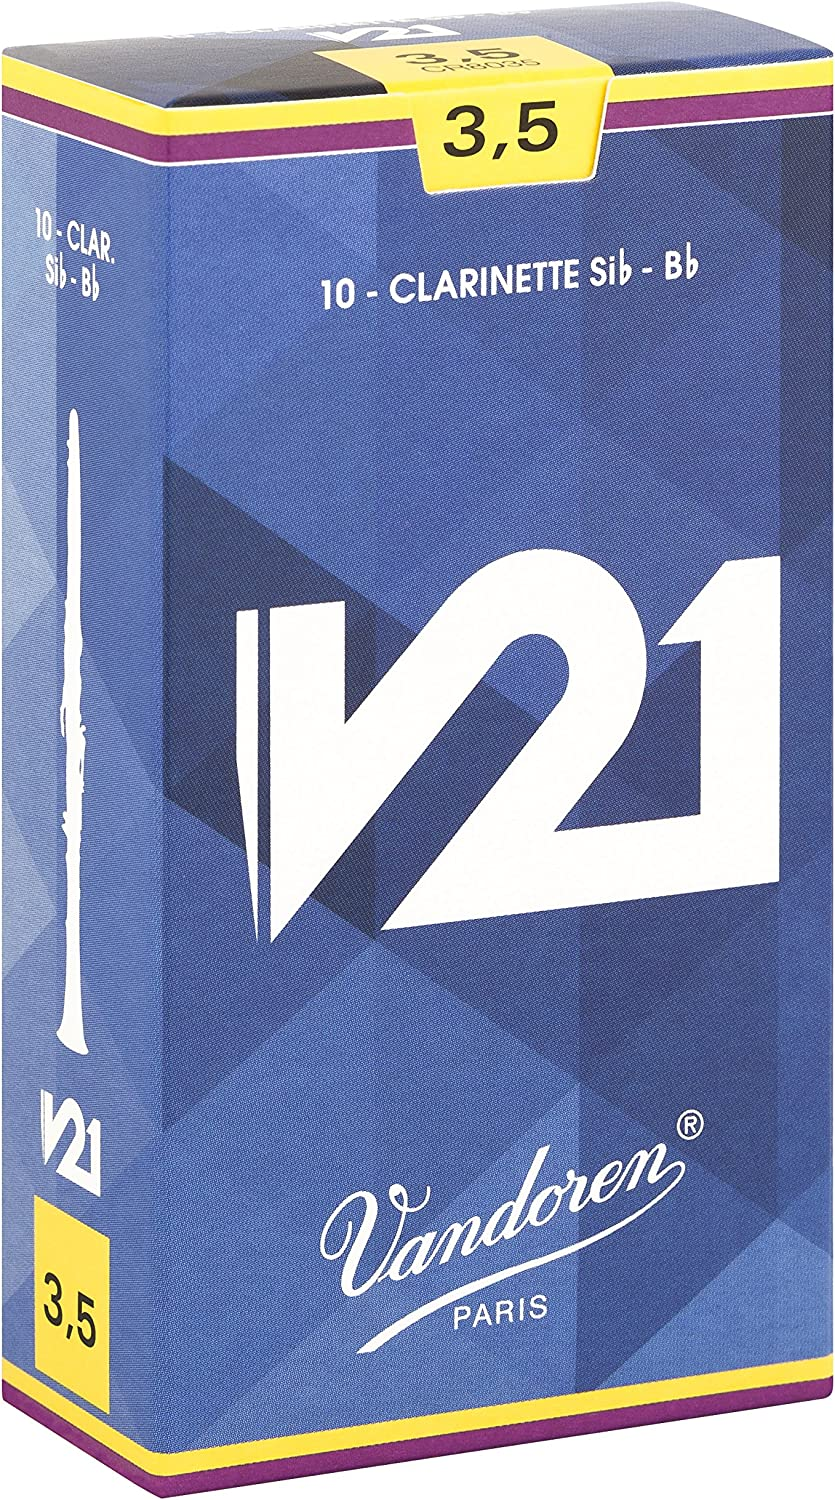 Vandoren CR8035 Bb Clarinet V21 Reeds Strength 3.5; Box of 10